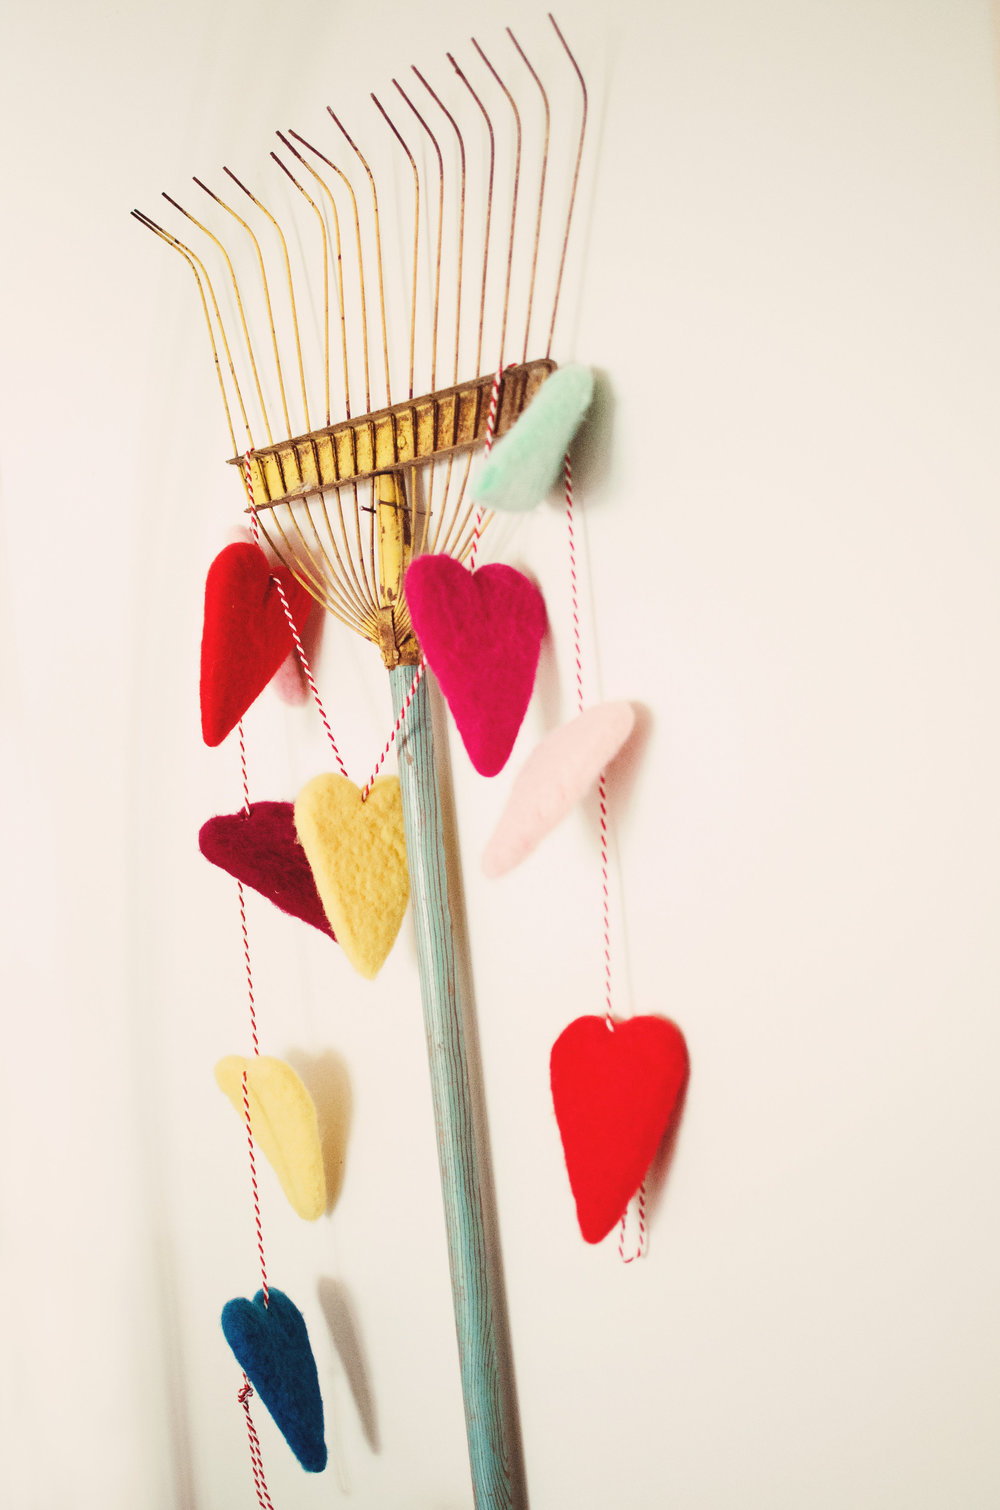 Vintage rake used as wall decor with heart garland. H.Prall & Co. | hprallandco.com